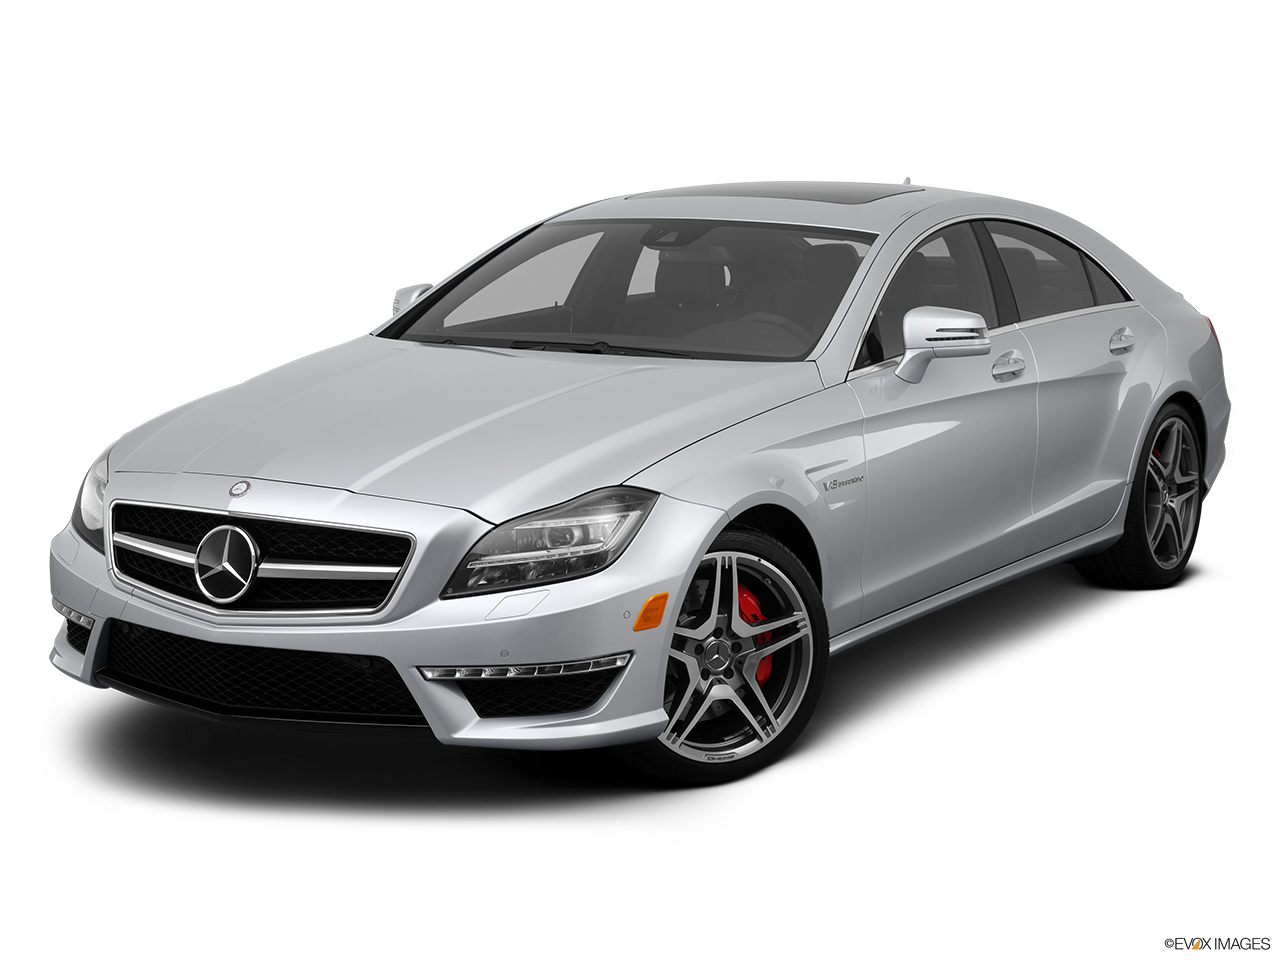 2014 mercedes benz cls class sedan cls63 amg 4matic for 2014 mercedes benz cls63 amg 4matic